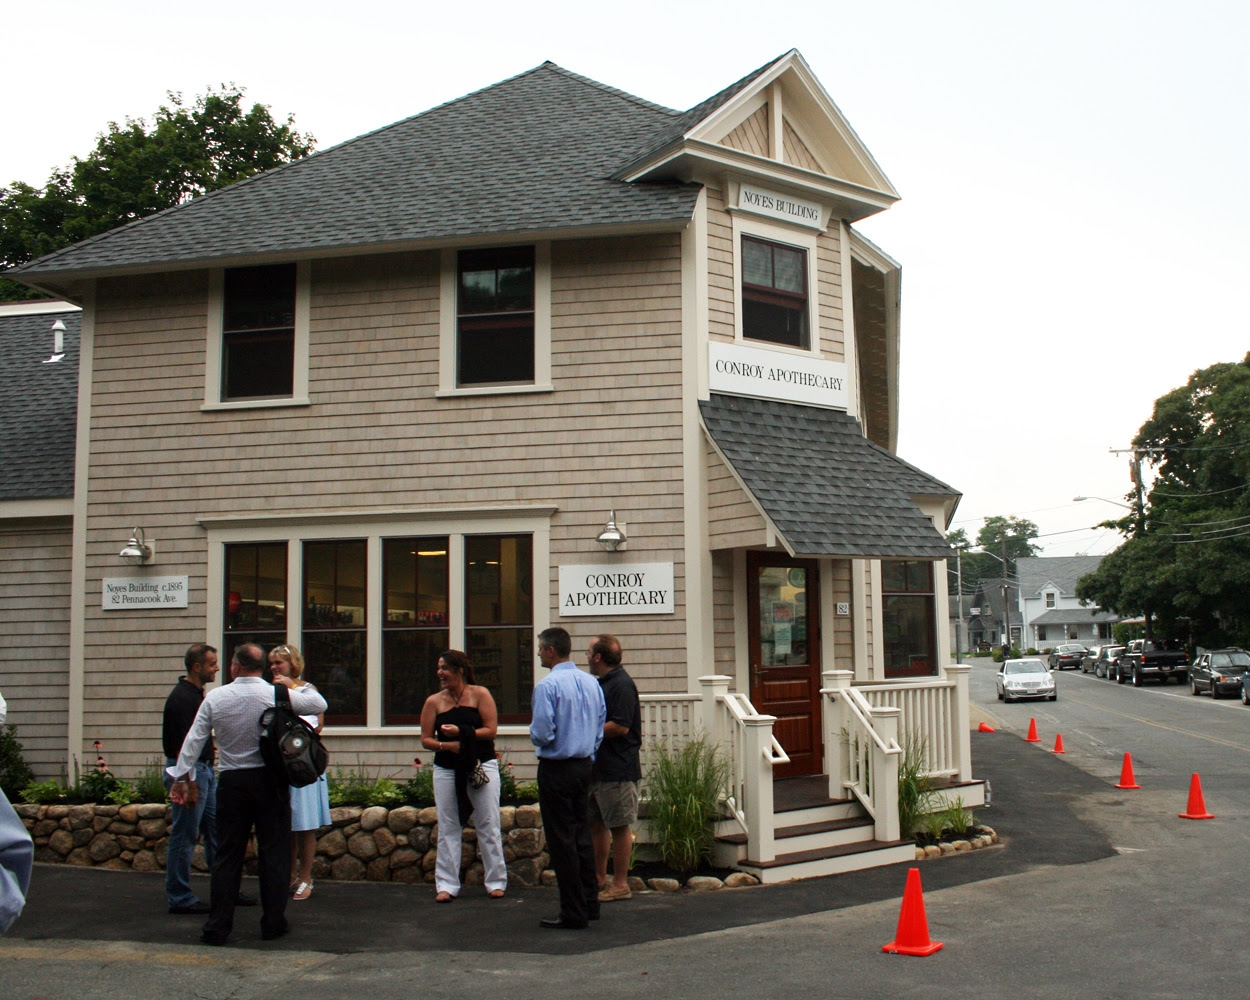 Noyes Building, Oak Bluffs